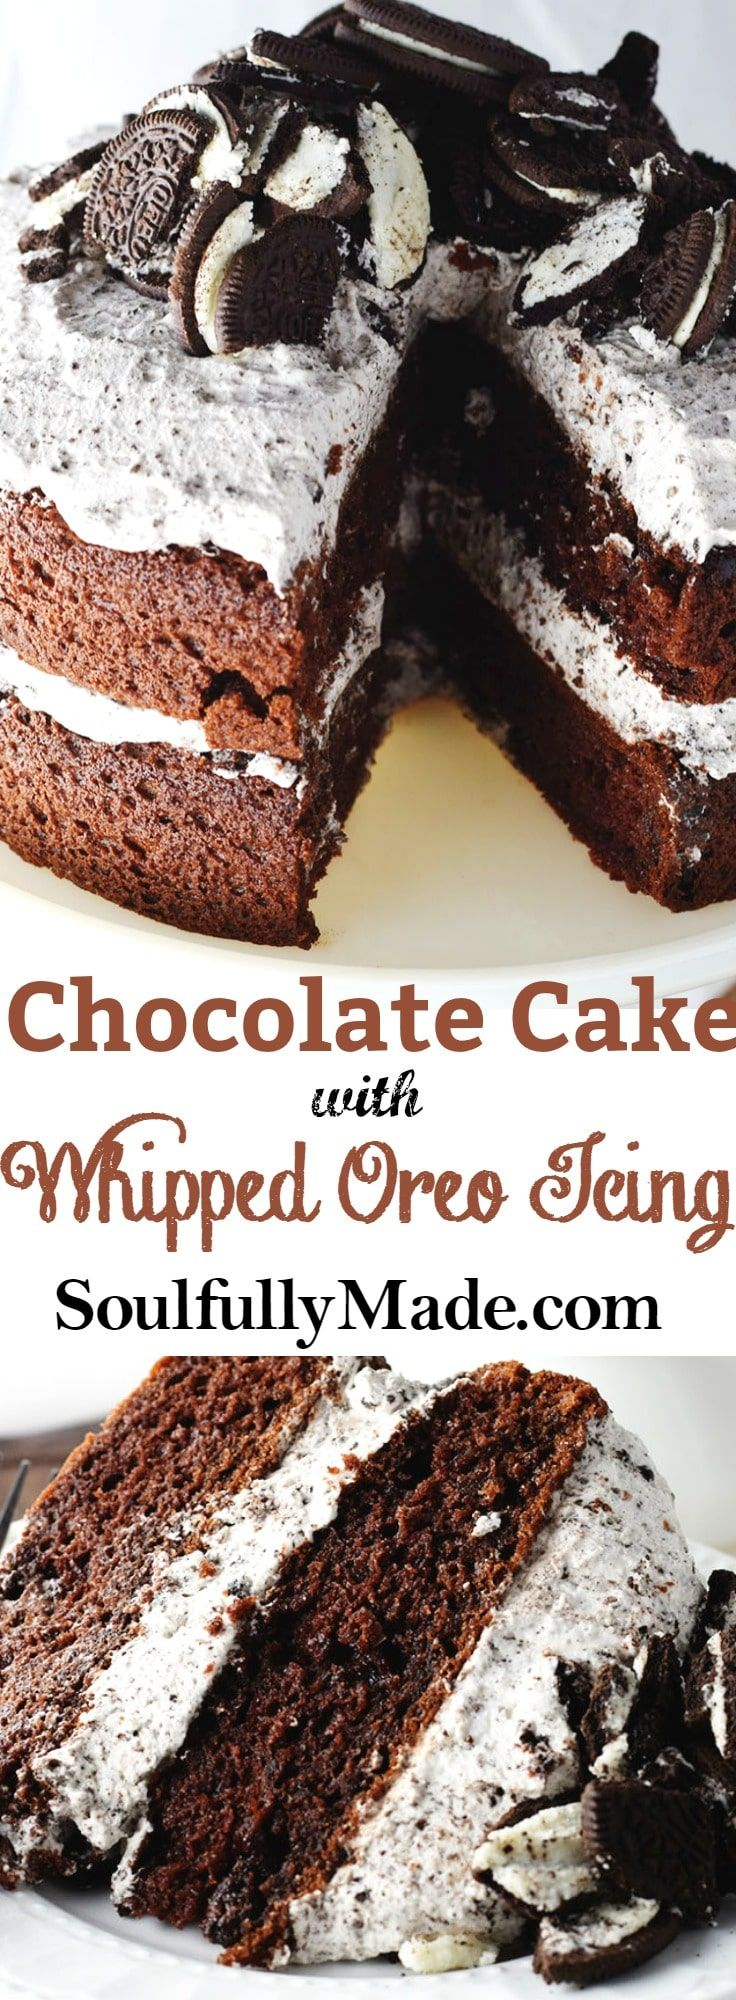 Chocolate Cake with Whipped Oreo Icing is a deliciously soft, moist cake filled and topped with layers of heavenly whipped Oreo cookie icing!